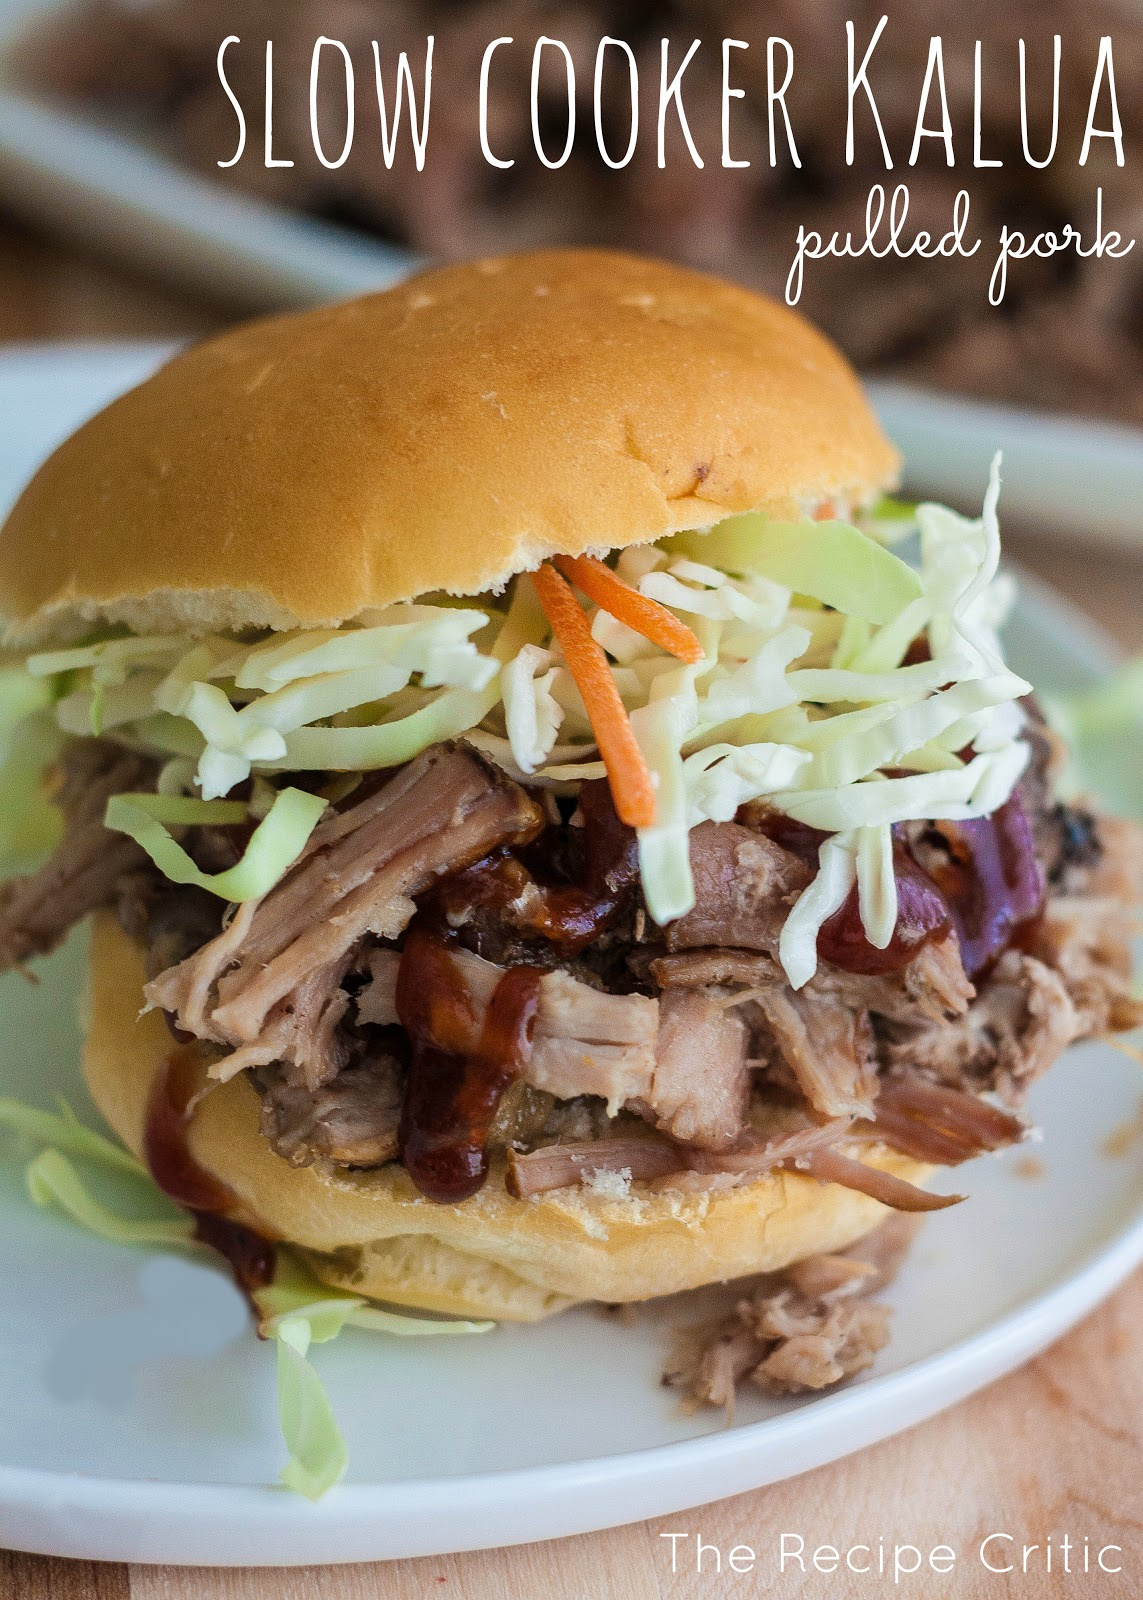 Slow Cooker Kalua Pulled Pork |Just Pie Recipes